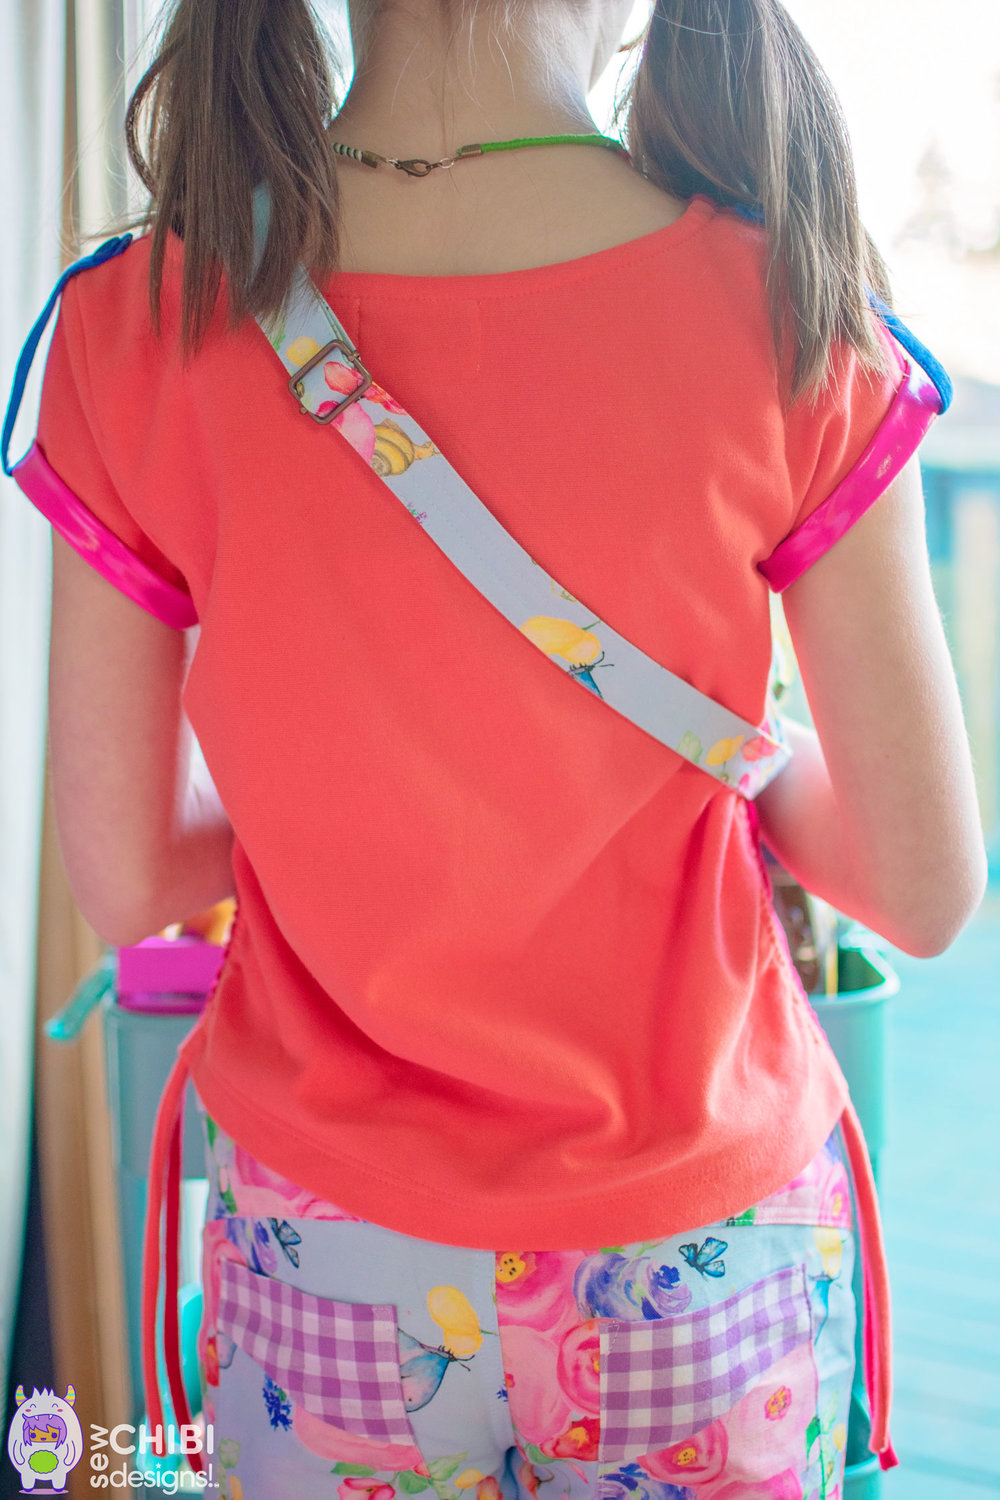 �FREE PATTERN! the Mochi Bag for Kids and Adults. An adjustable strap, zippered chest bag (can be worn on hips too!) with a front pocket! A must-have accessory for any outing!